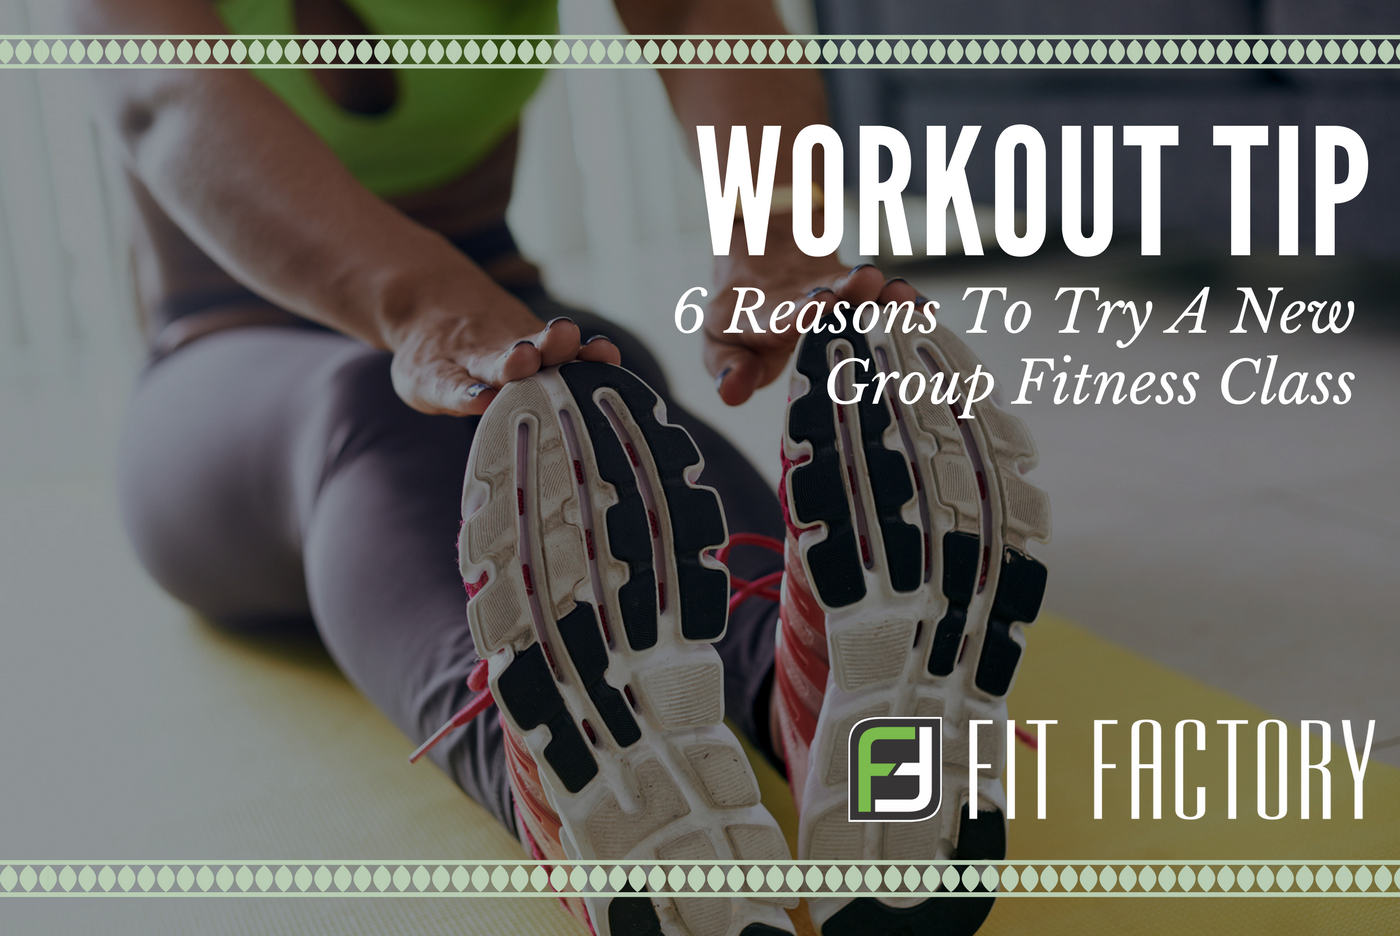 6 Reasons To Try a New Group Fitness Class